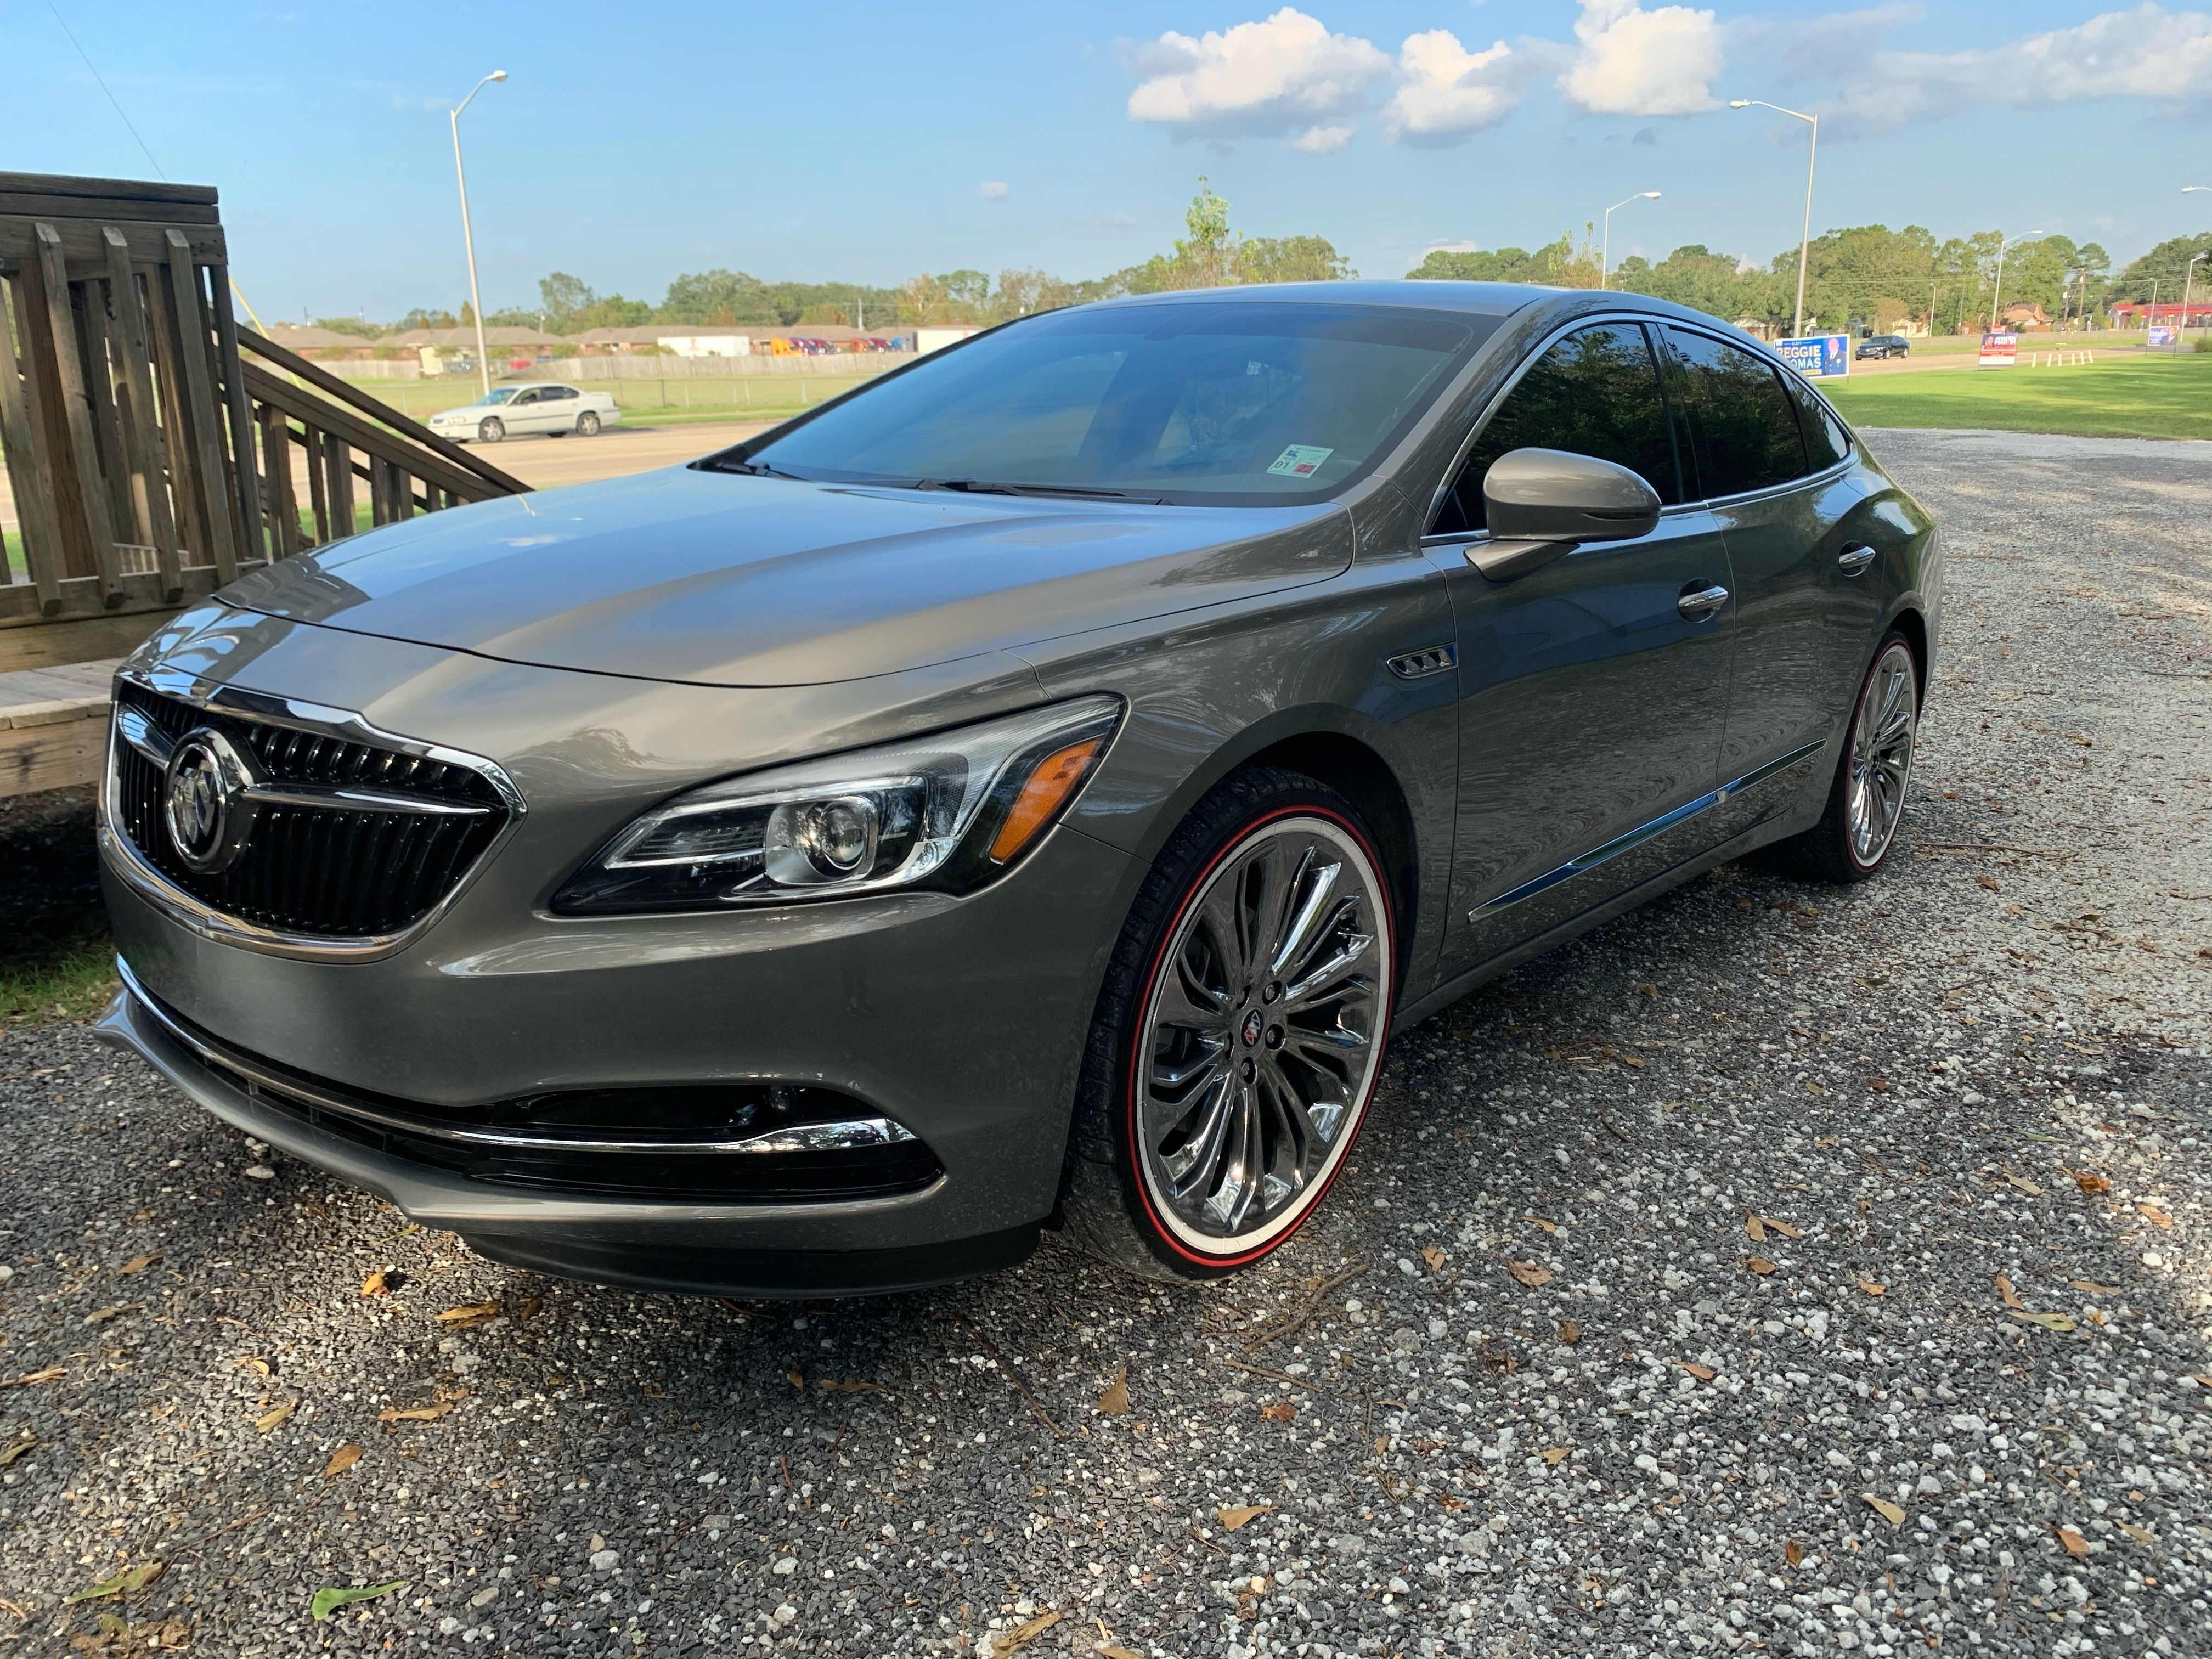 Beautiful 2018 Buick Lacrosse On 20inch Red Line Tyres Buick Redlines Redstripes Buick Lacrosse Luxury Cars Buick